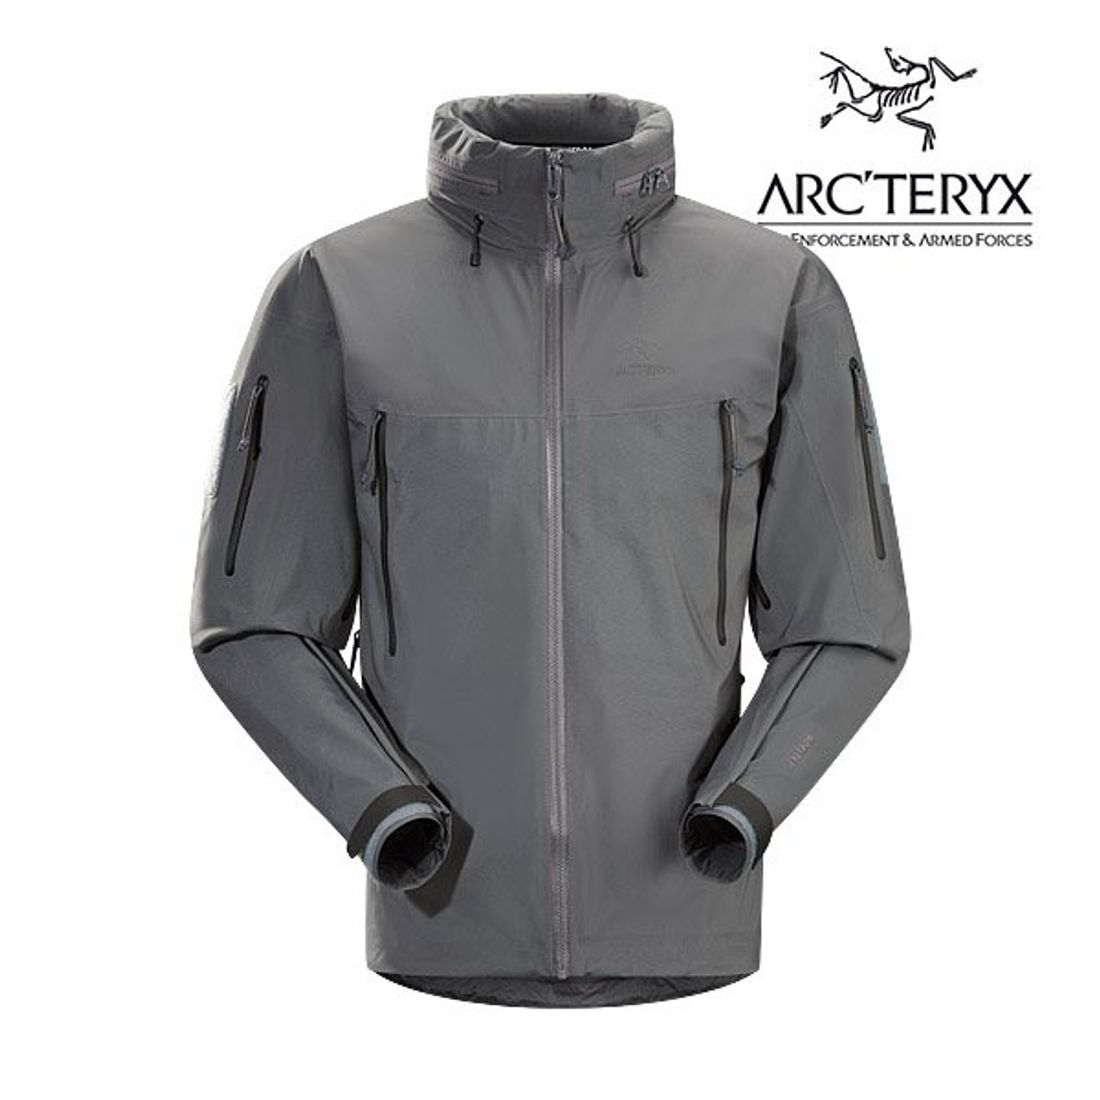 2614660b302 Veste Alpha Jacket V2 Arc teryx Leaf